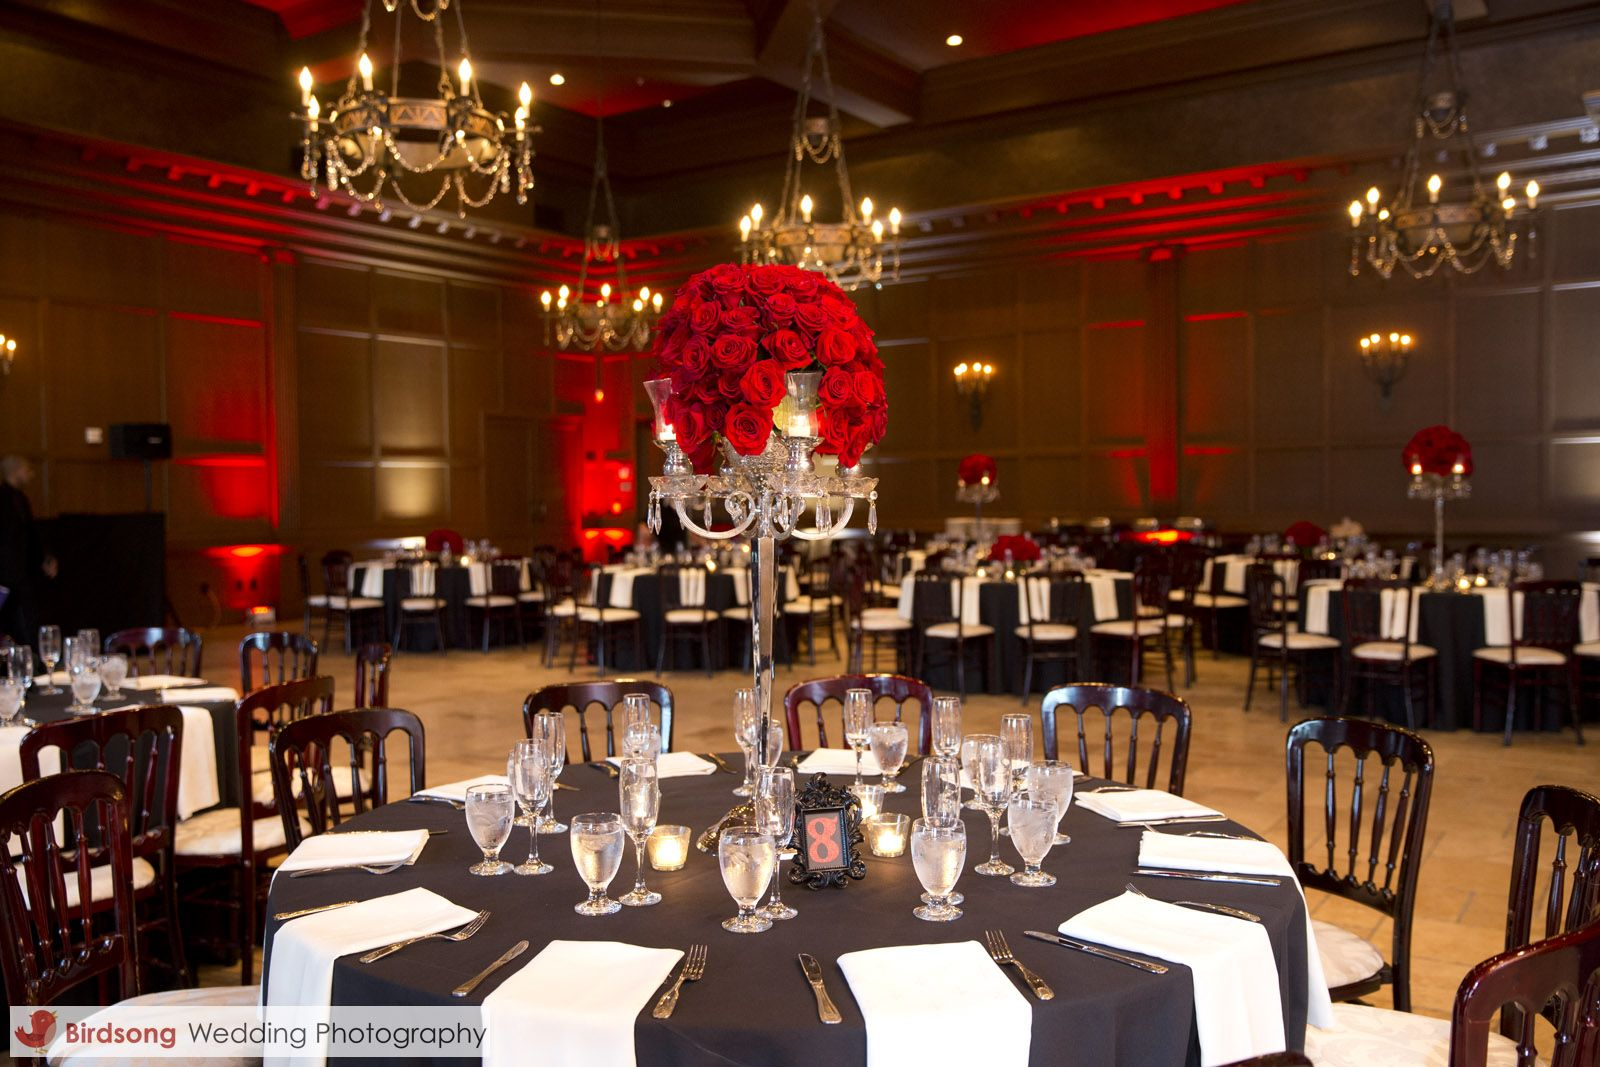 Crystal Candelabra Centerpiece With Red Roses And Candles